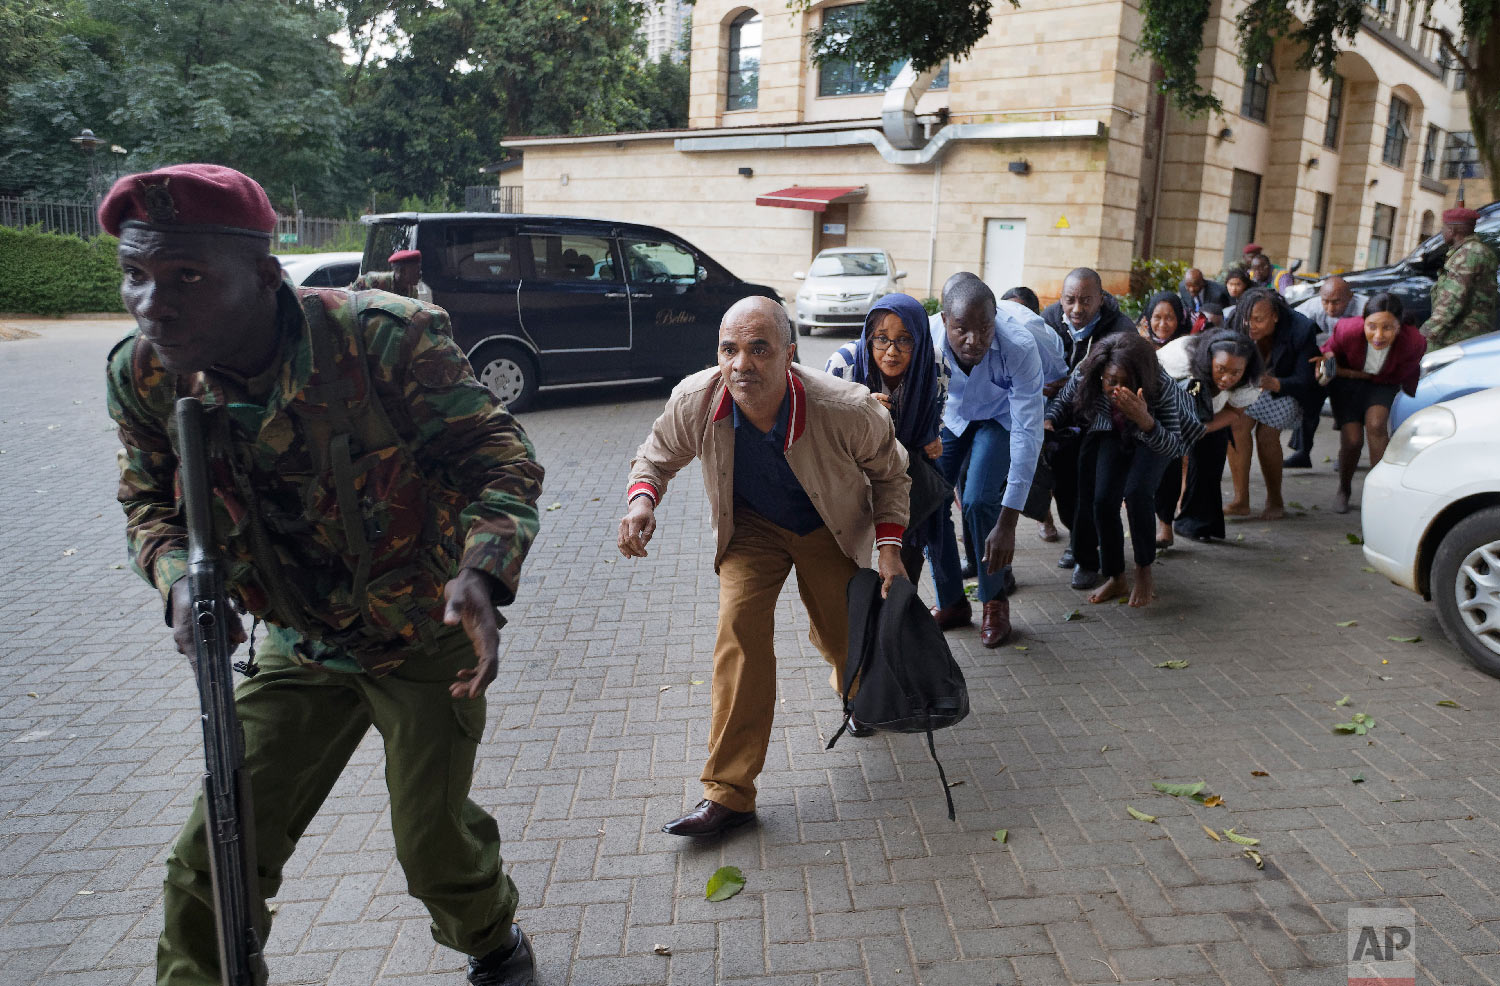 Civilians who had been hiding in buildings flee under the direction of a member of security forces at a hotel complex in Nairobi, Kenya, Jan. 15, 2019. (AP Photo/Ben Curtis)